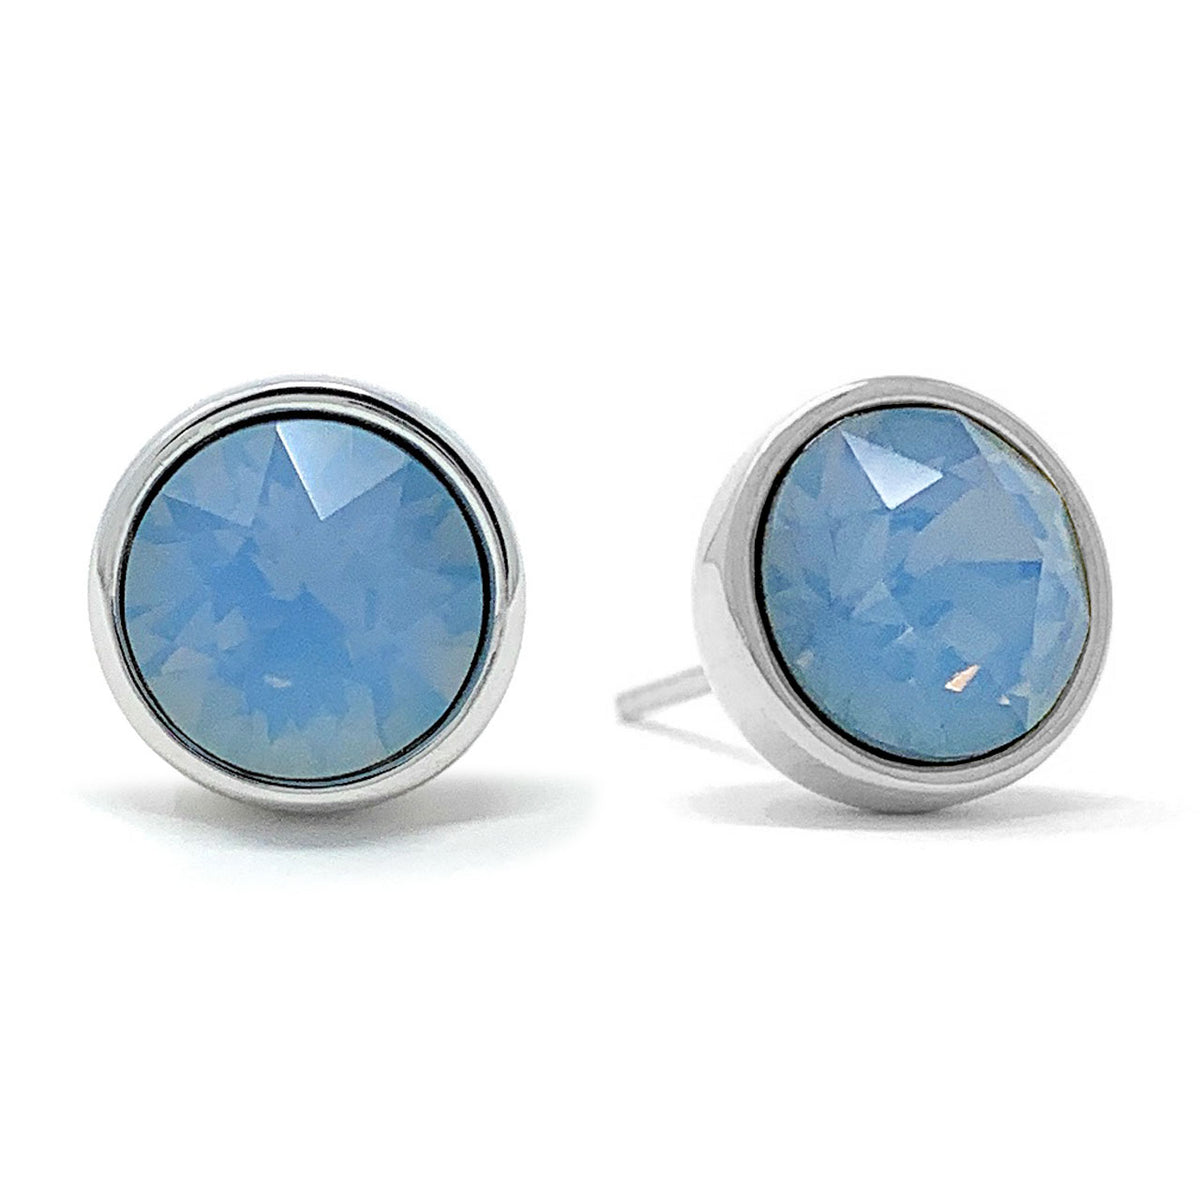 Harley Stud Earrings with Air Blue Round Opals from Swarovski Silver Toned Rhodium Plated - Ed Heart